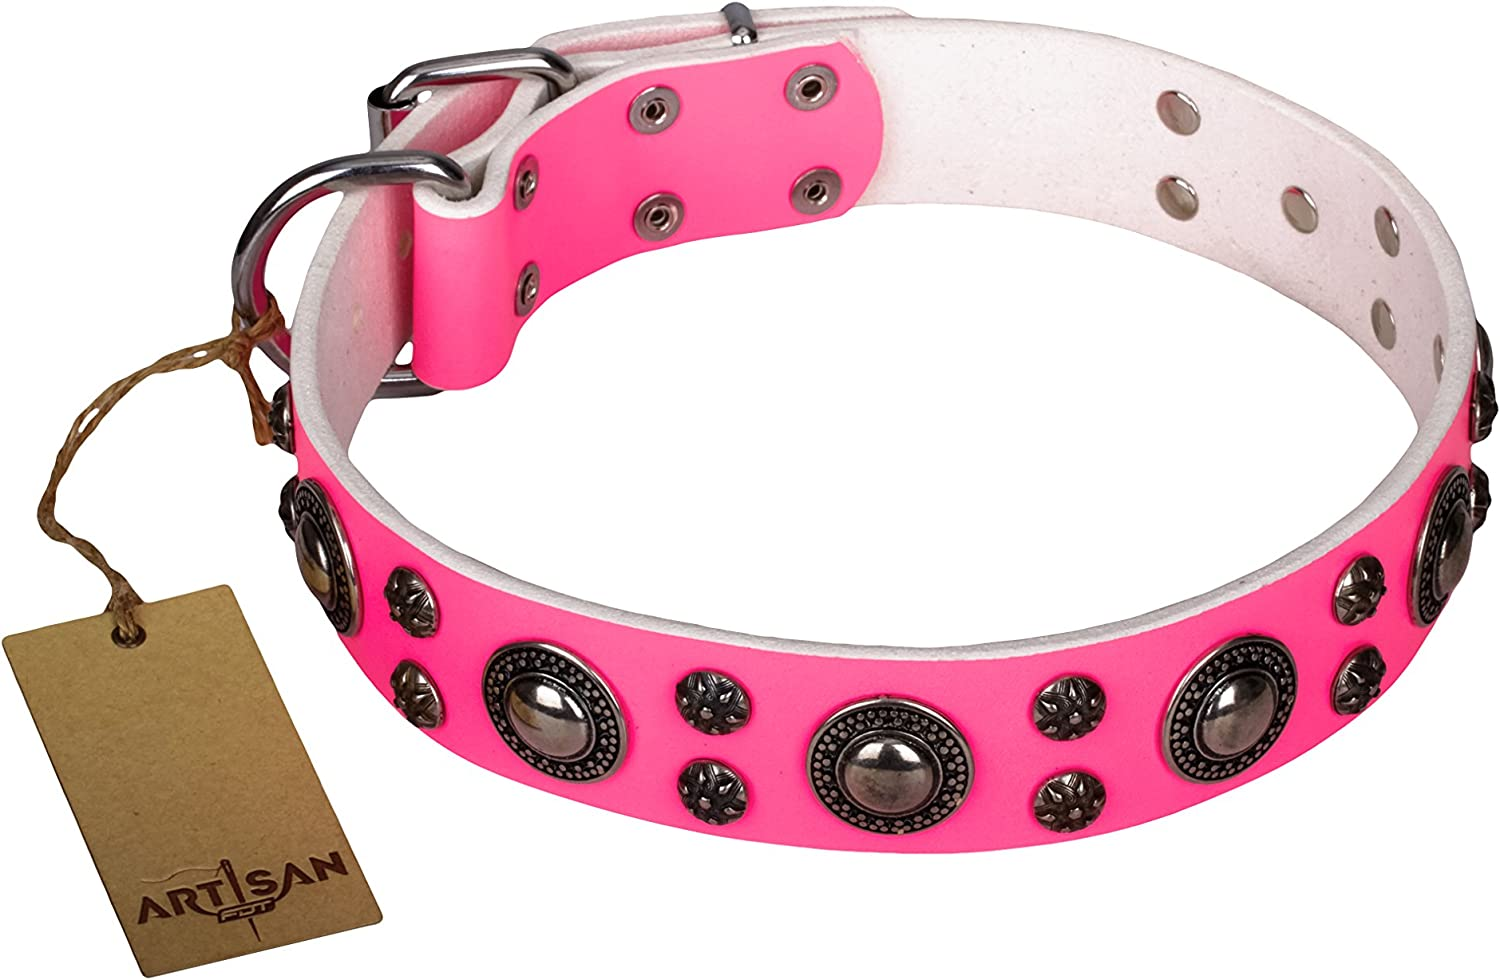 36 inch Pink Leather Dog Collar with Chrome Plated Decor   Round & Spicy  Handcrafted by Artisan